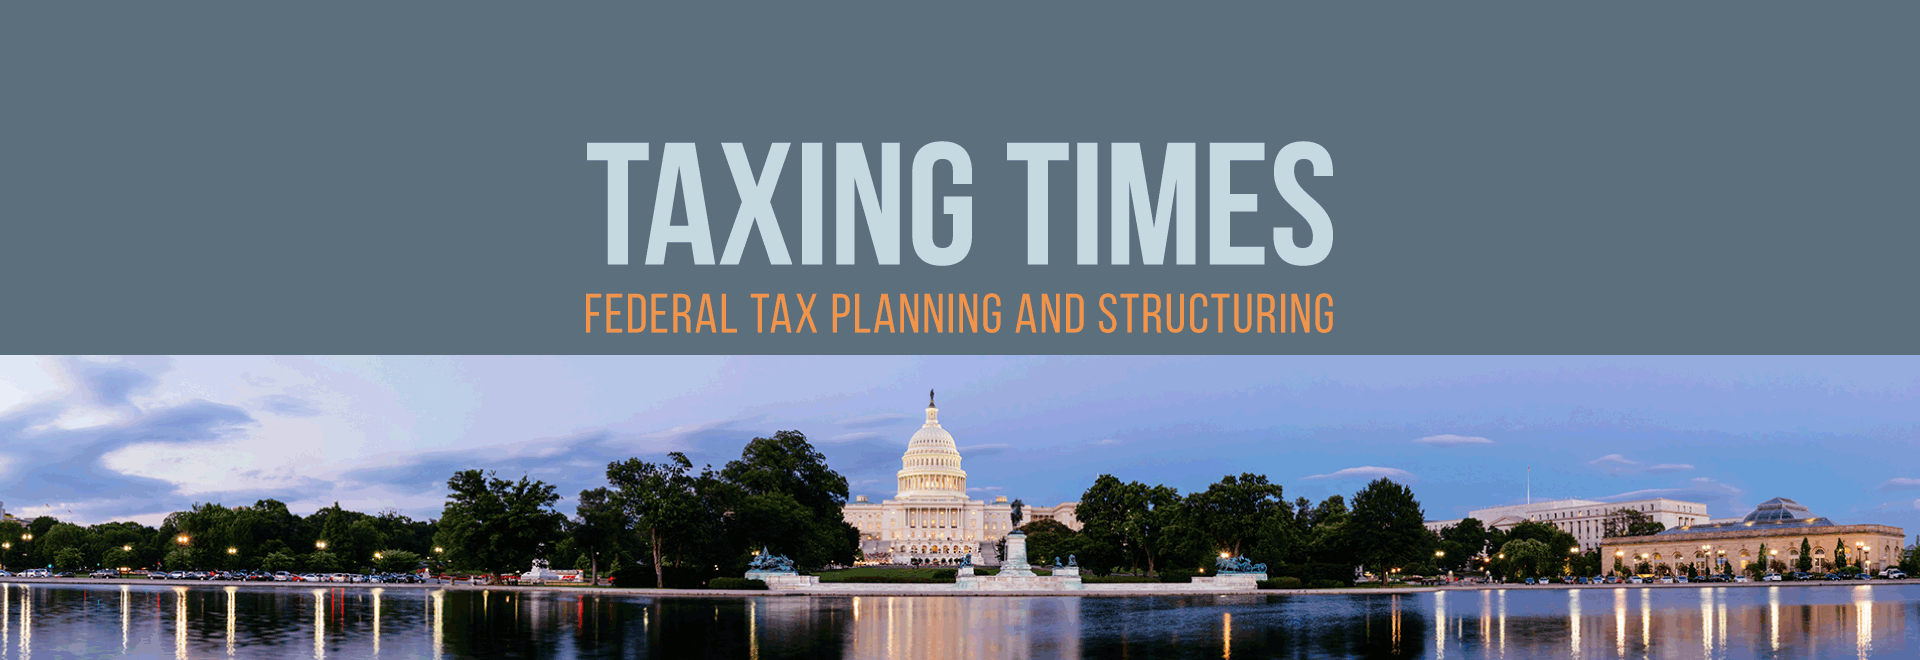 Taxing times blog header